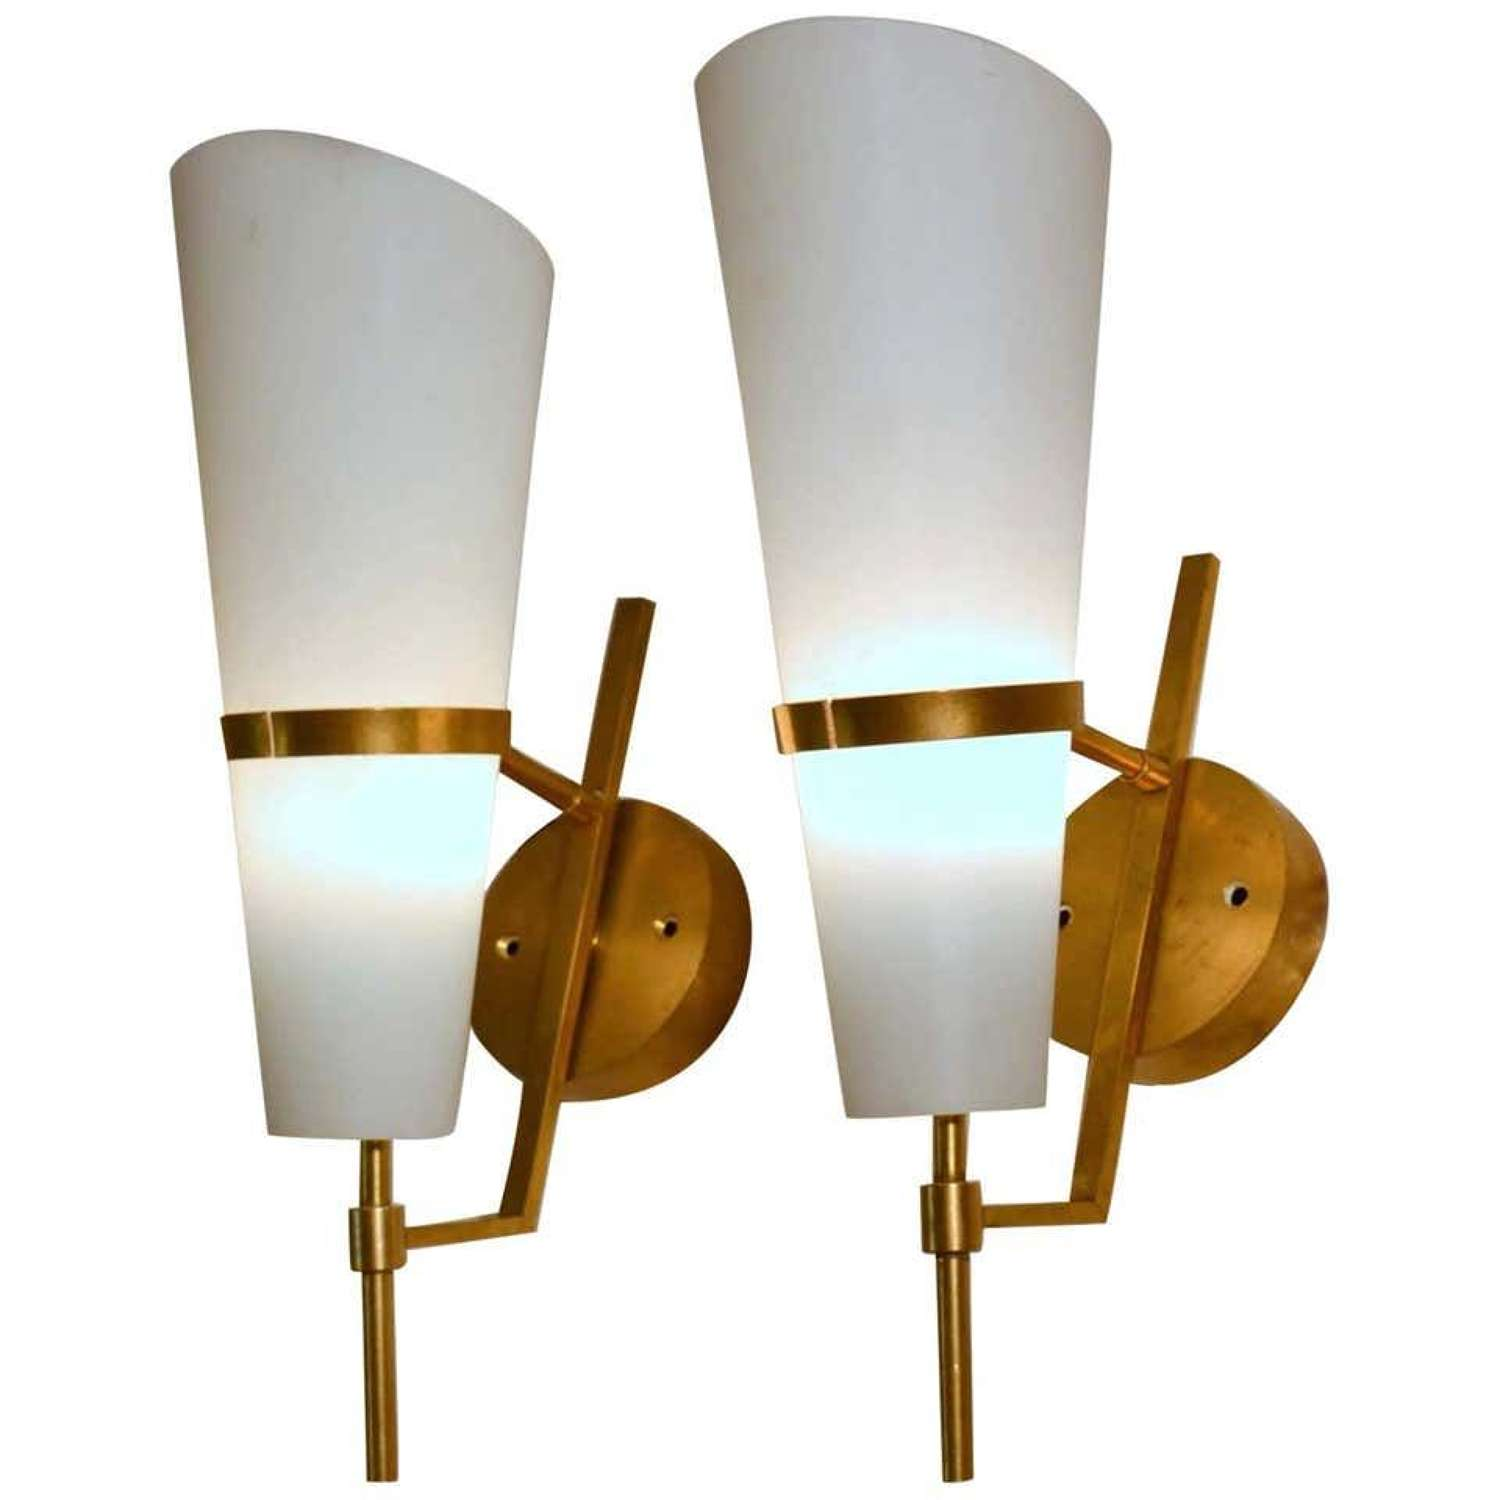 Pair of Wall Sconces in Brass and Glass Stilnovo, Italy